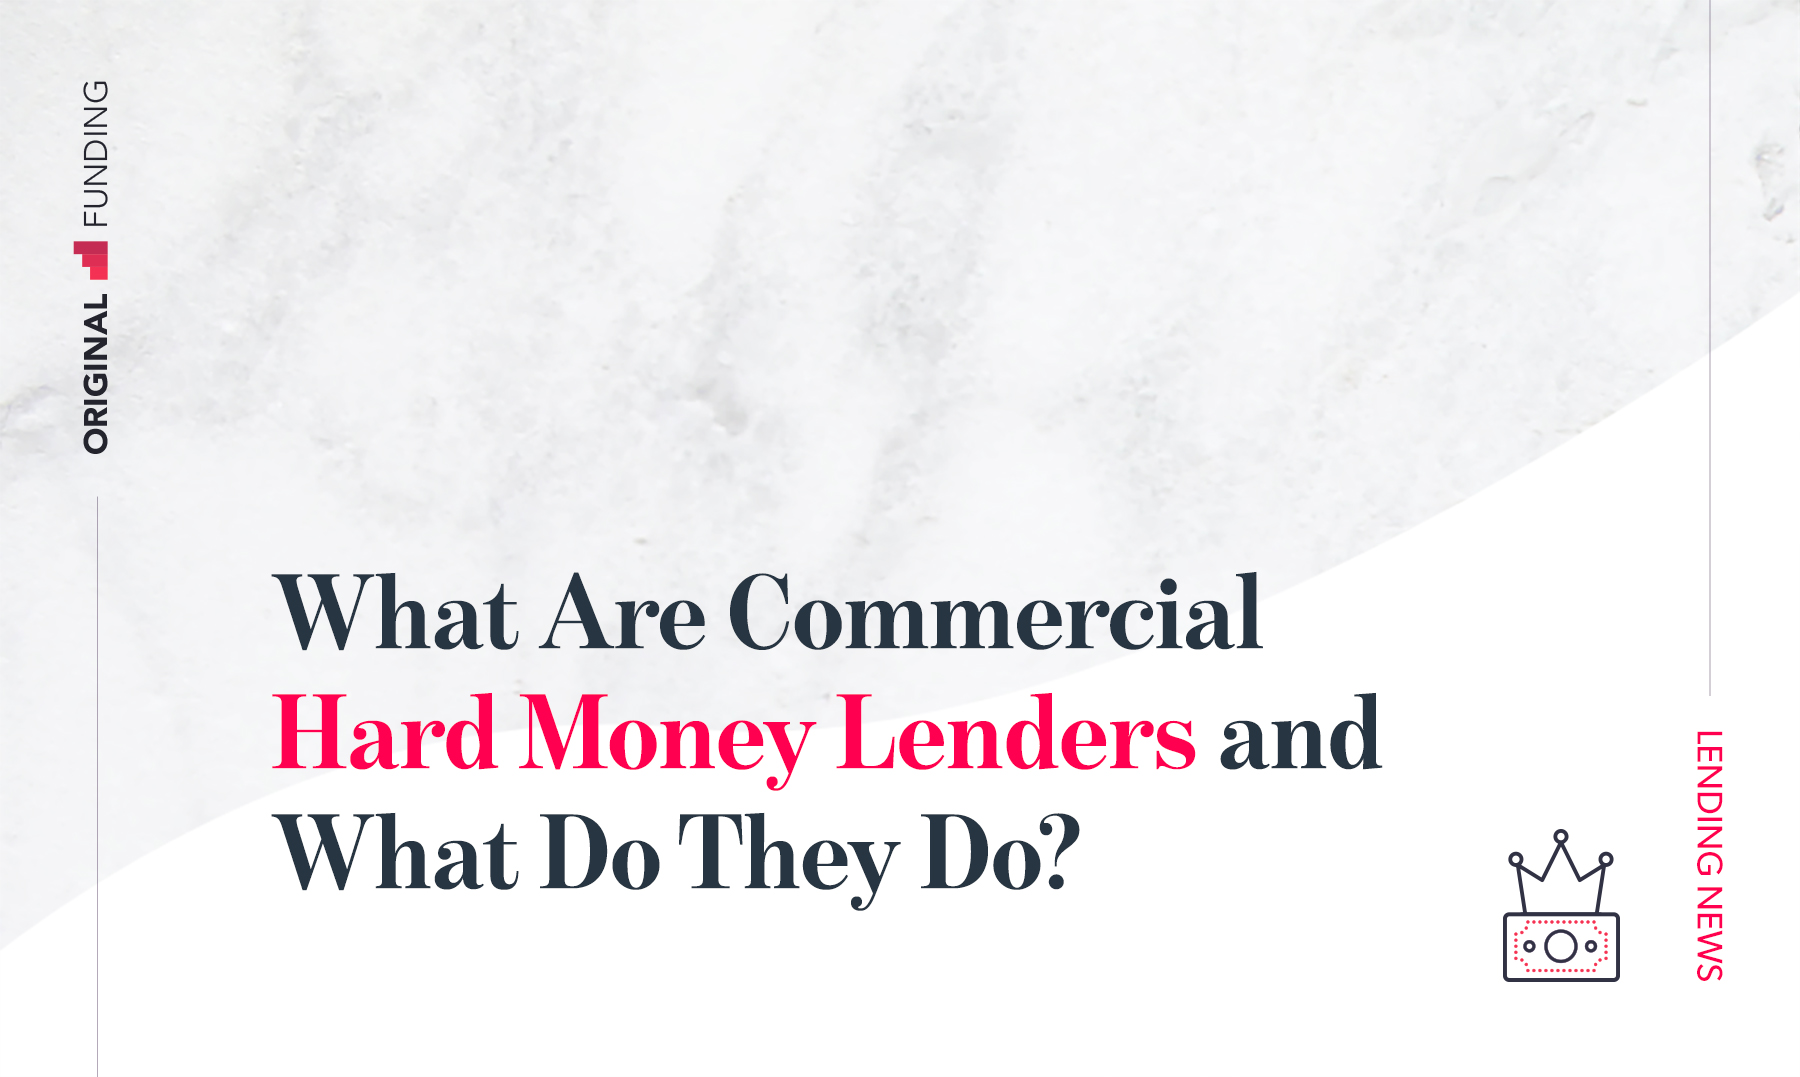 What Are Commercial Hard Money Lenders and What Do They Do?